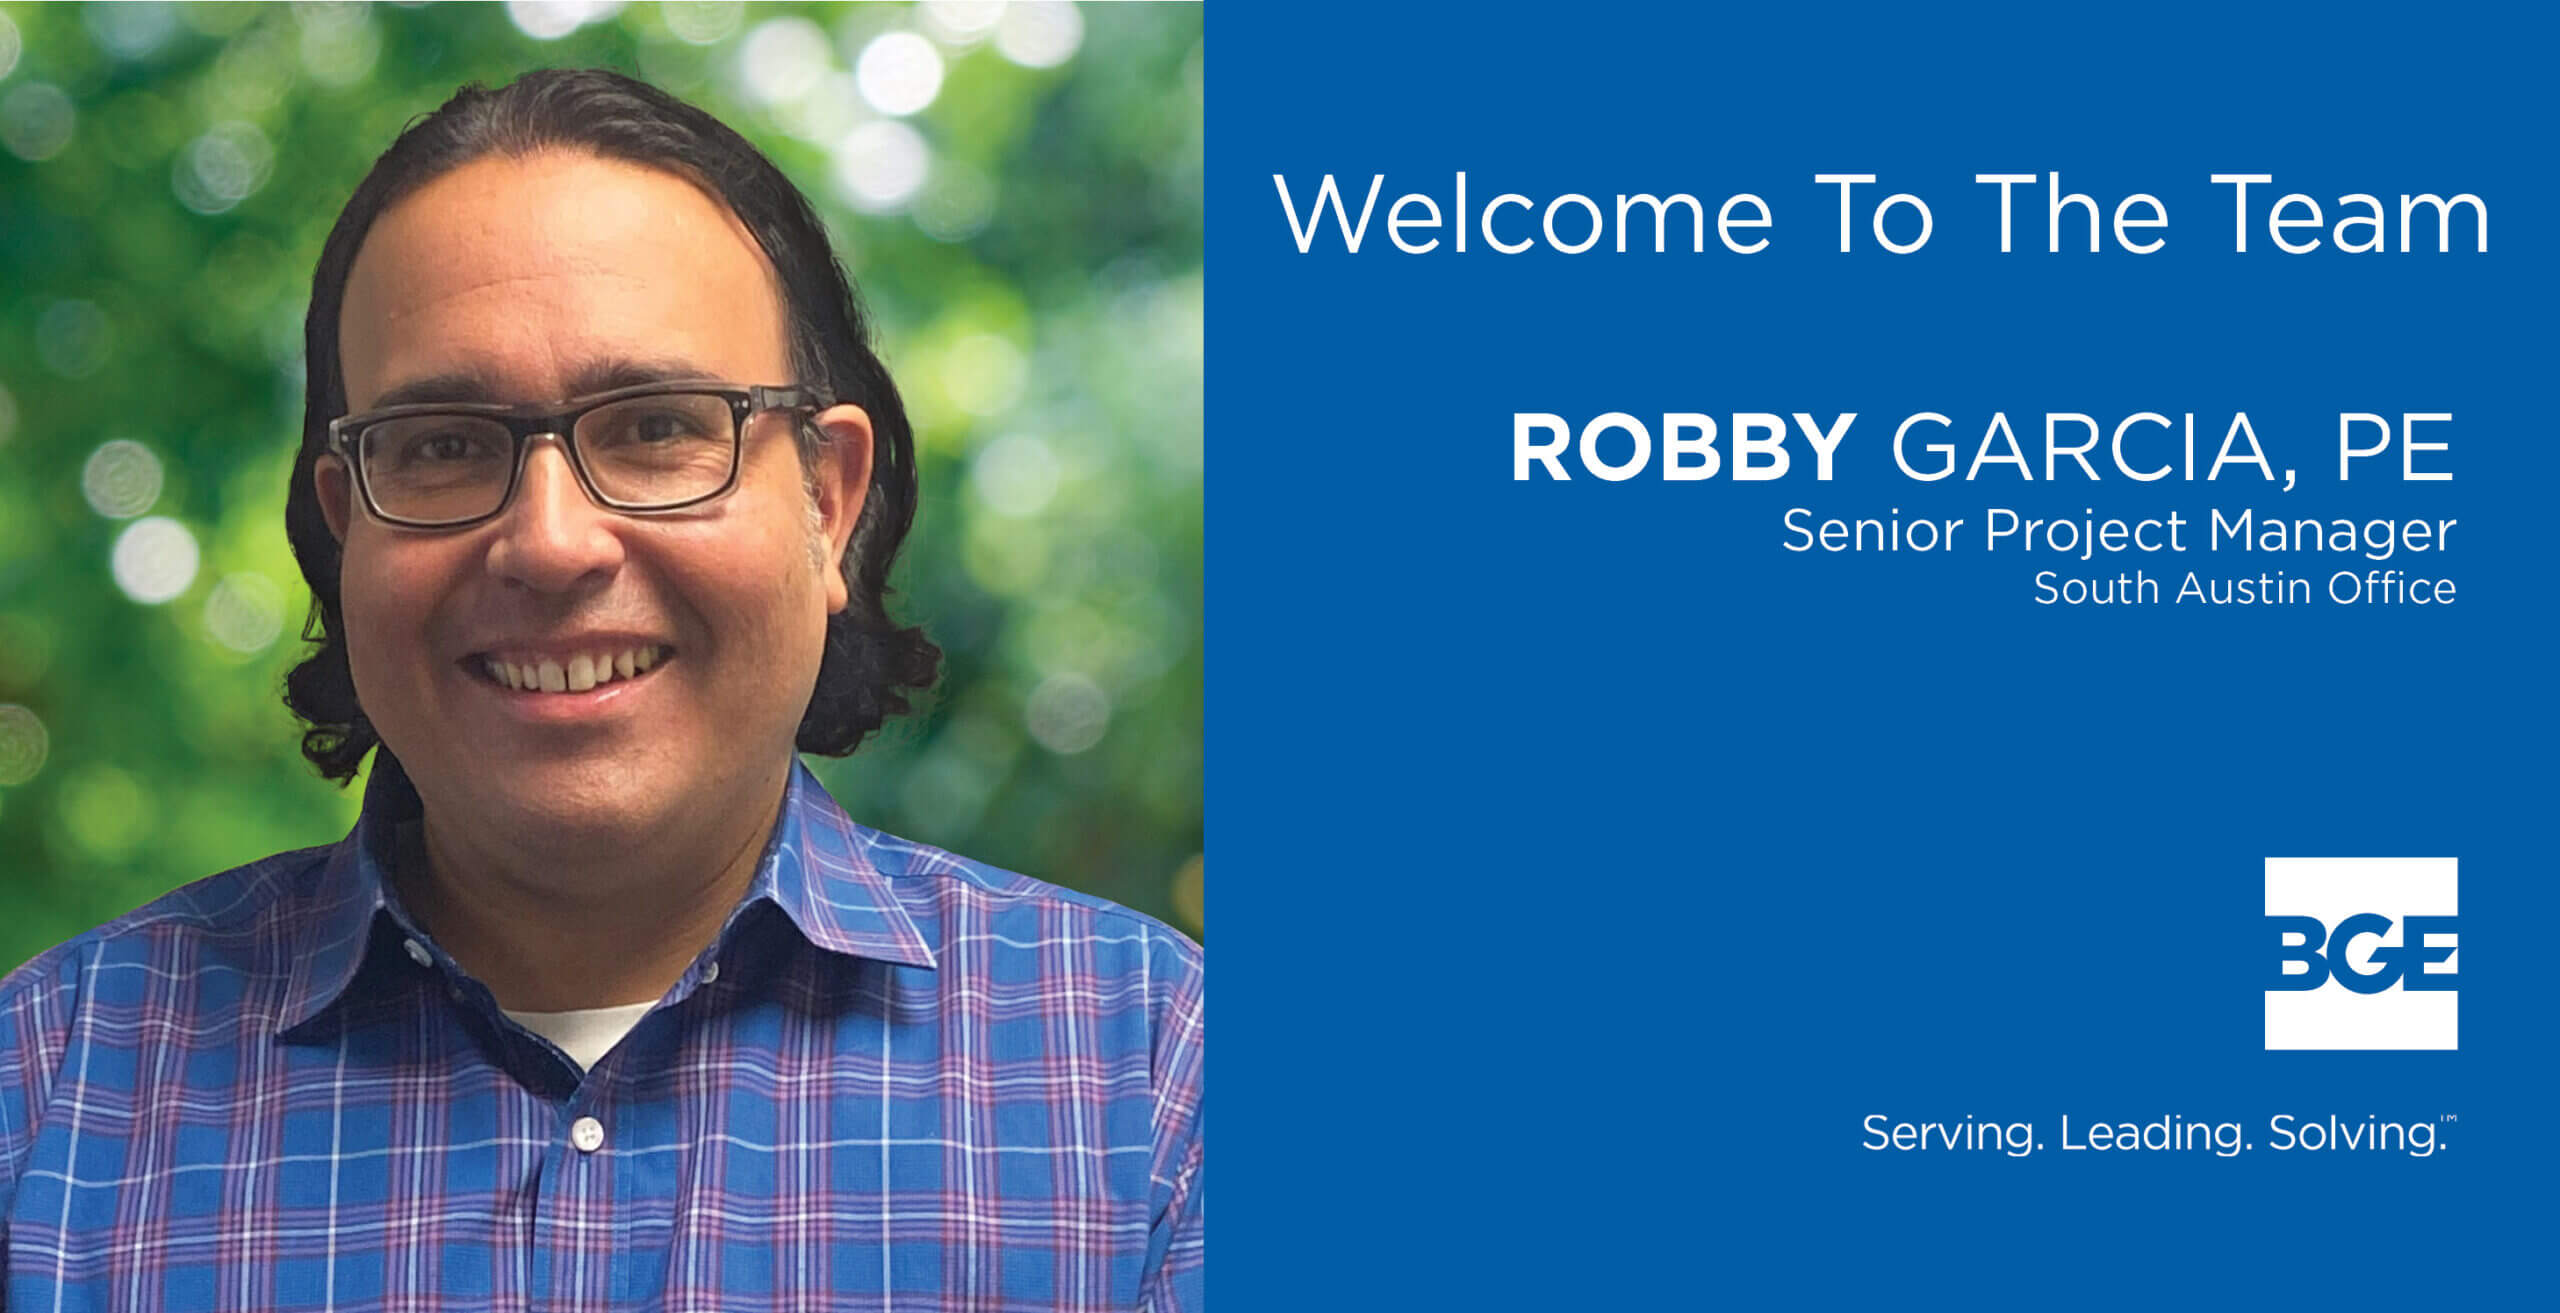 Welcome graphic for BGE, Inc. new hire Robby Garcia